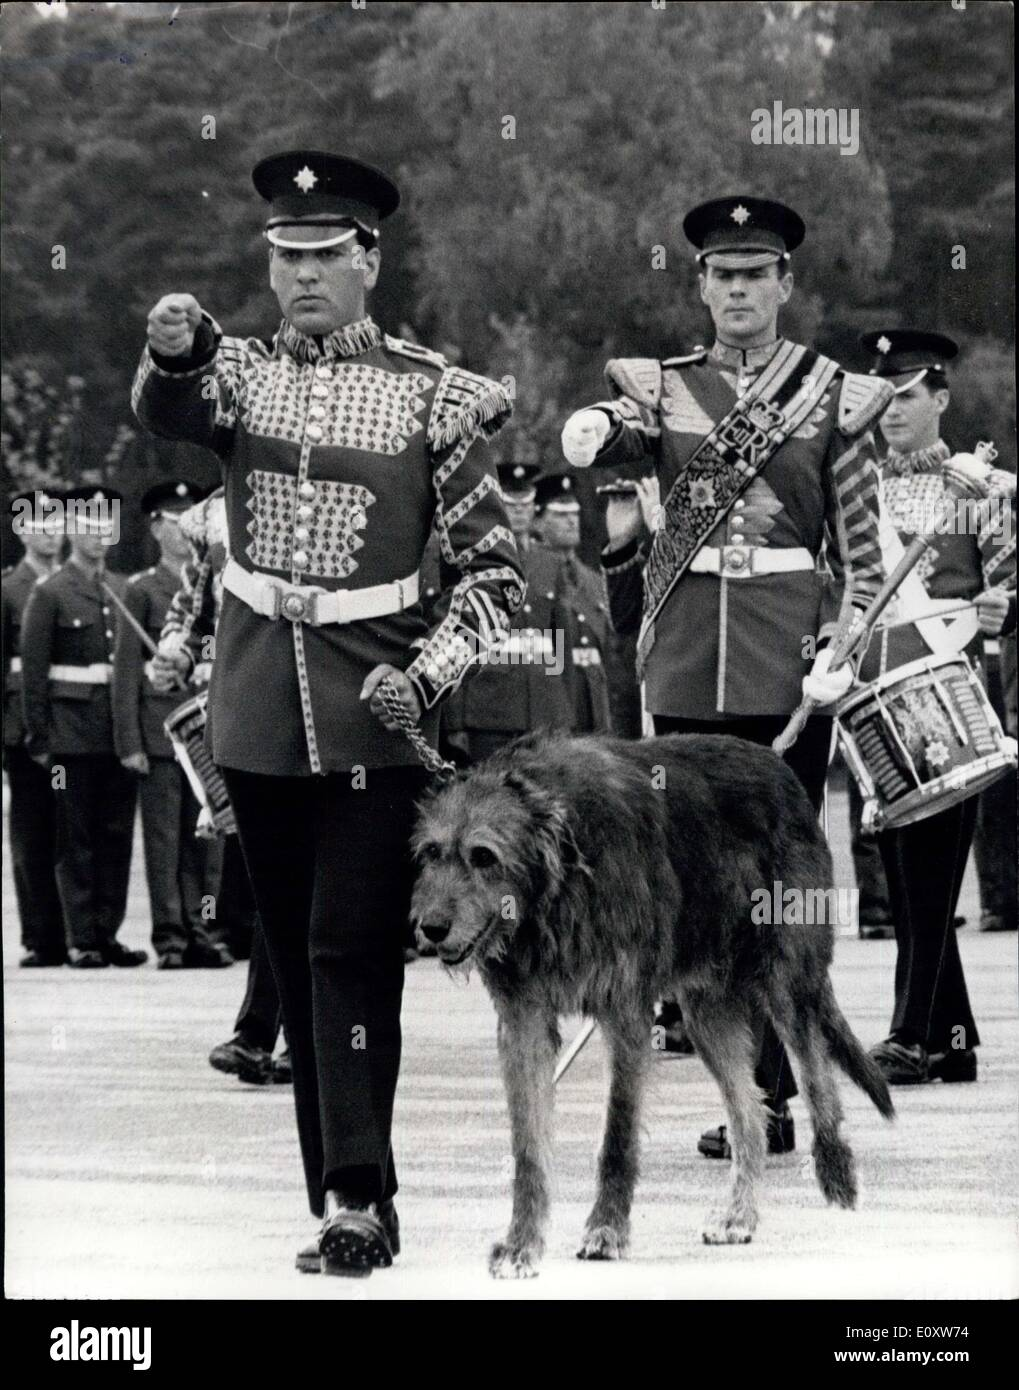 Sep. 27, 1967 - New Regimental Mascot for the Irish Guards: A 10-month old Irish wolfhound, Fionn, yesterday became the new regimental mascot of the First Batallion Irish Guards, at Pirbright, Surrey. Fionn was taking over from another Irish wolfhound, Shaun, who was being demobilised with full military honours after his full seven years' service. Field Marshal Earl Alexander to Tunis, Colonel of the Regiment, was there to give Shaun a pat on the head and say: ''Goodbye old friend''. Shaun will be retired to Scotland. Photo shows the entire 1st - Stock Image